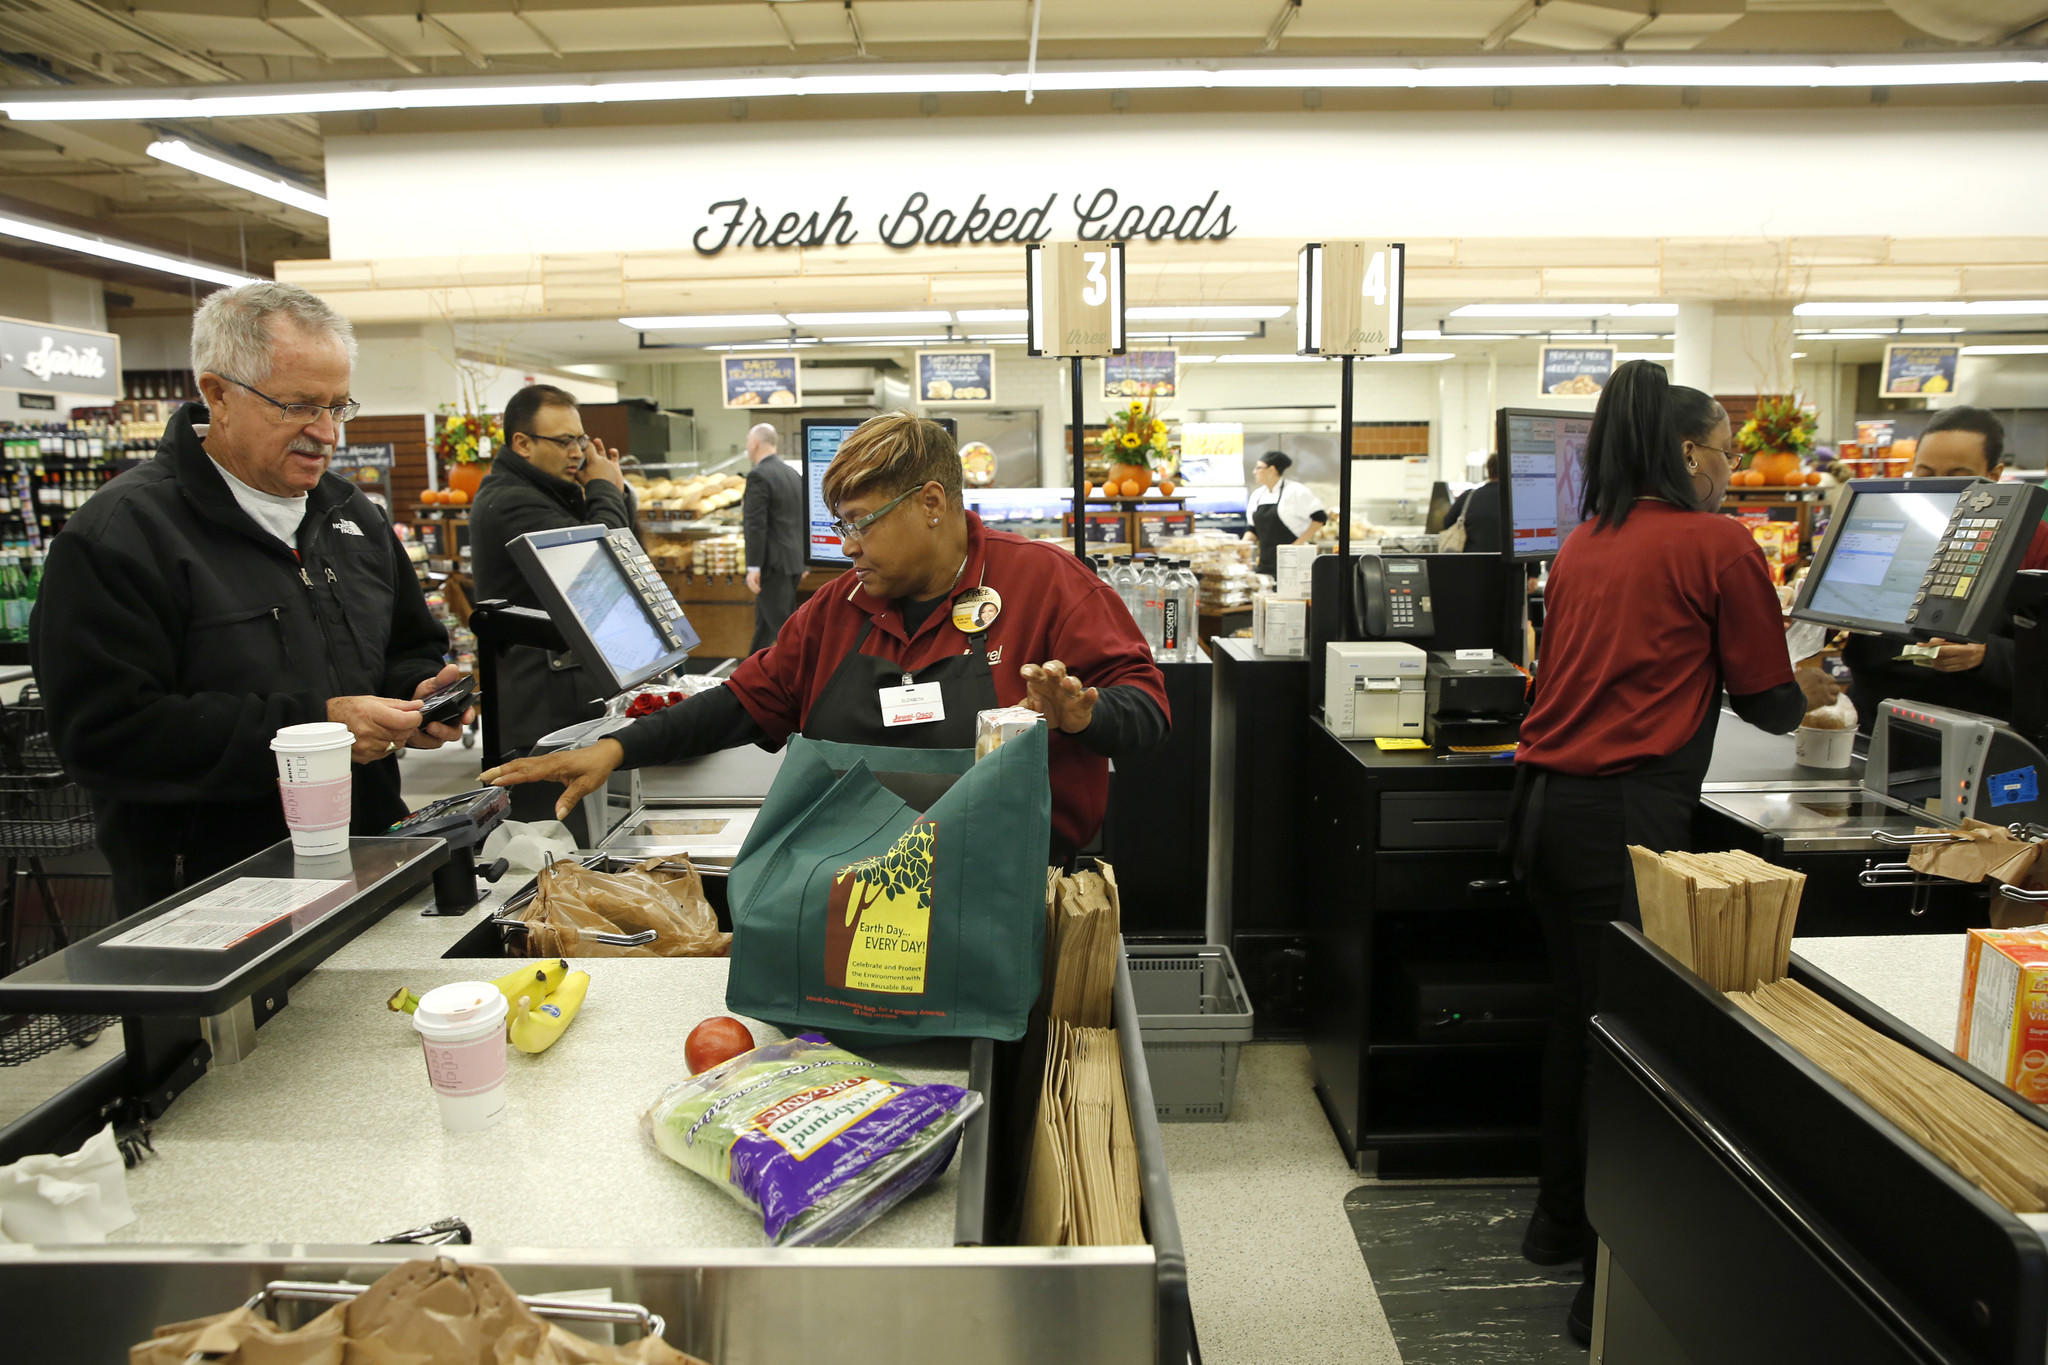 The checkout area has been remodeled. Service clerk Elizabeth Harris checks out Rick Van Horne. The Jewel Osco at State St. and Ohio St. has been remodeled with new features and products.